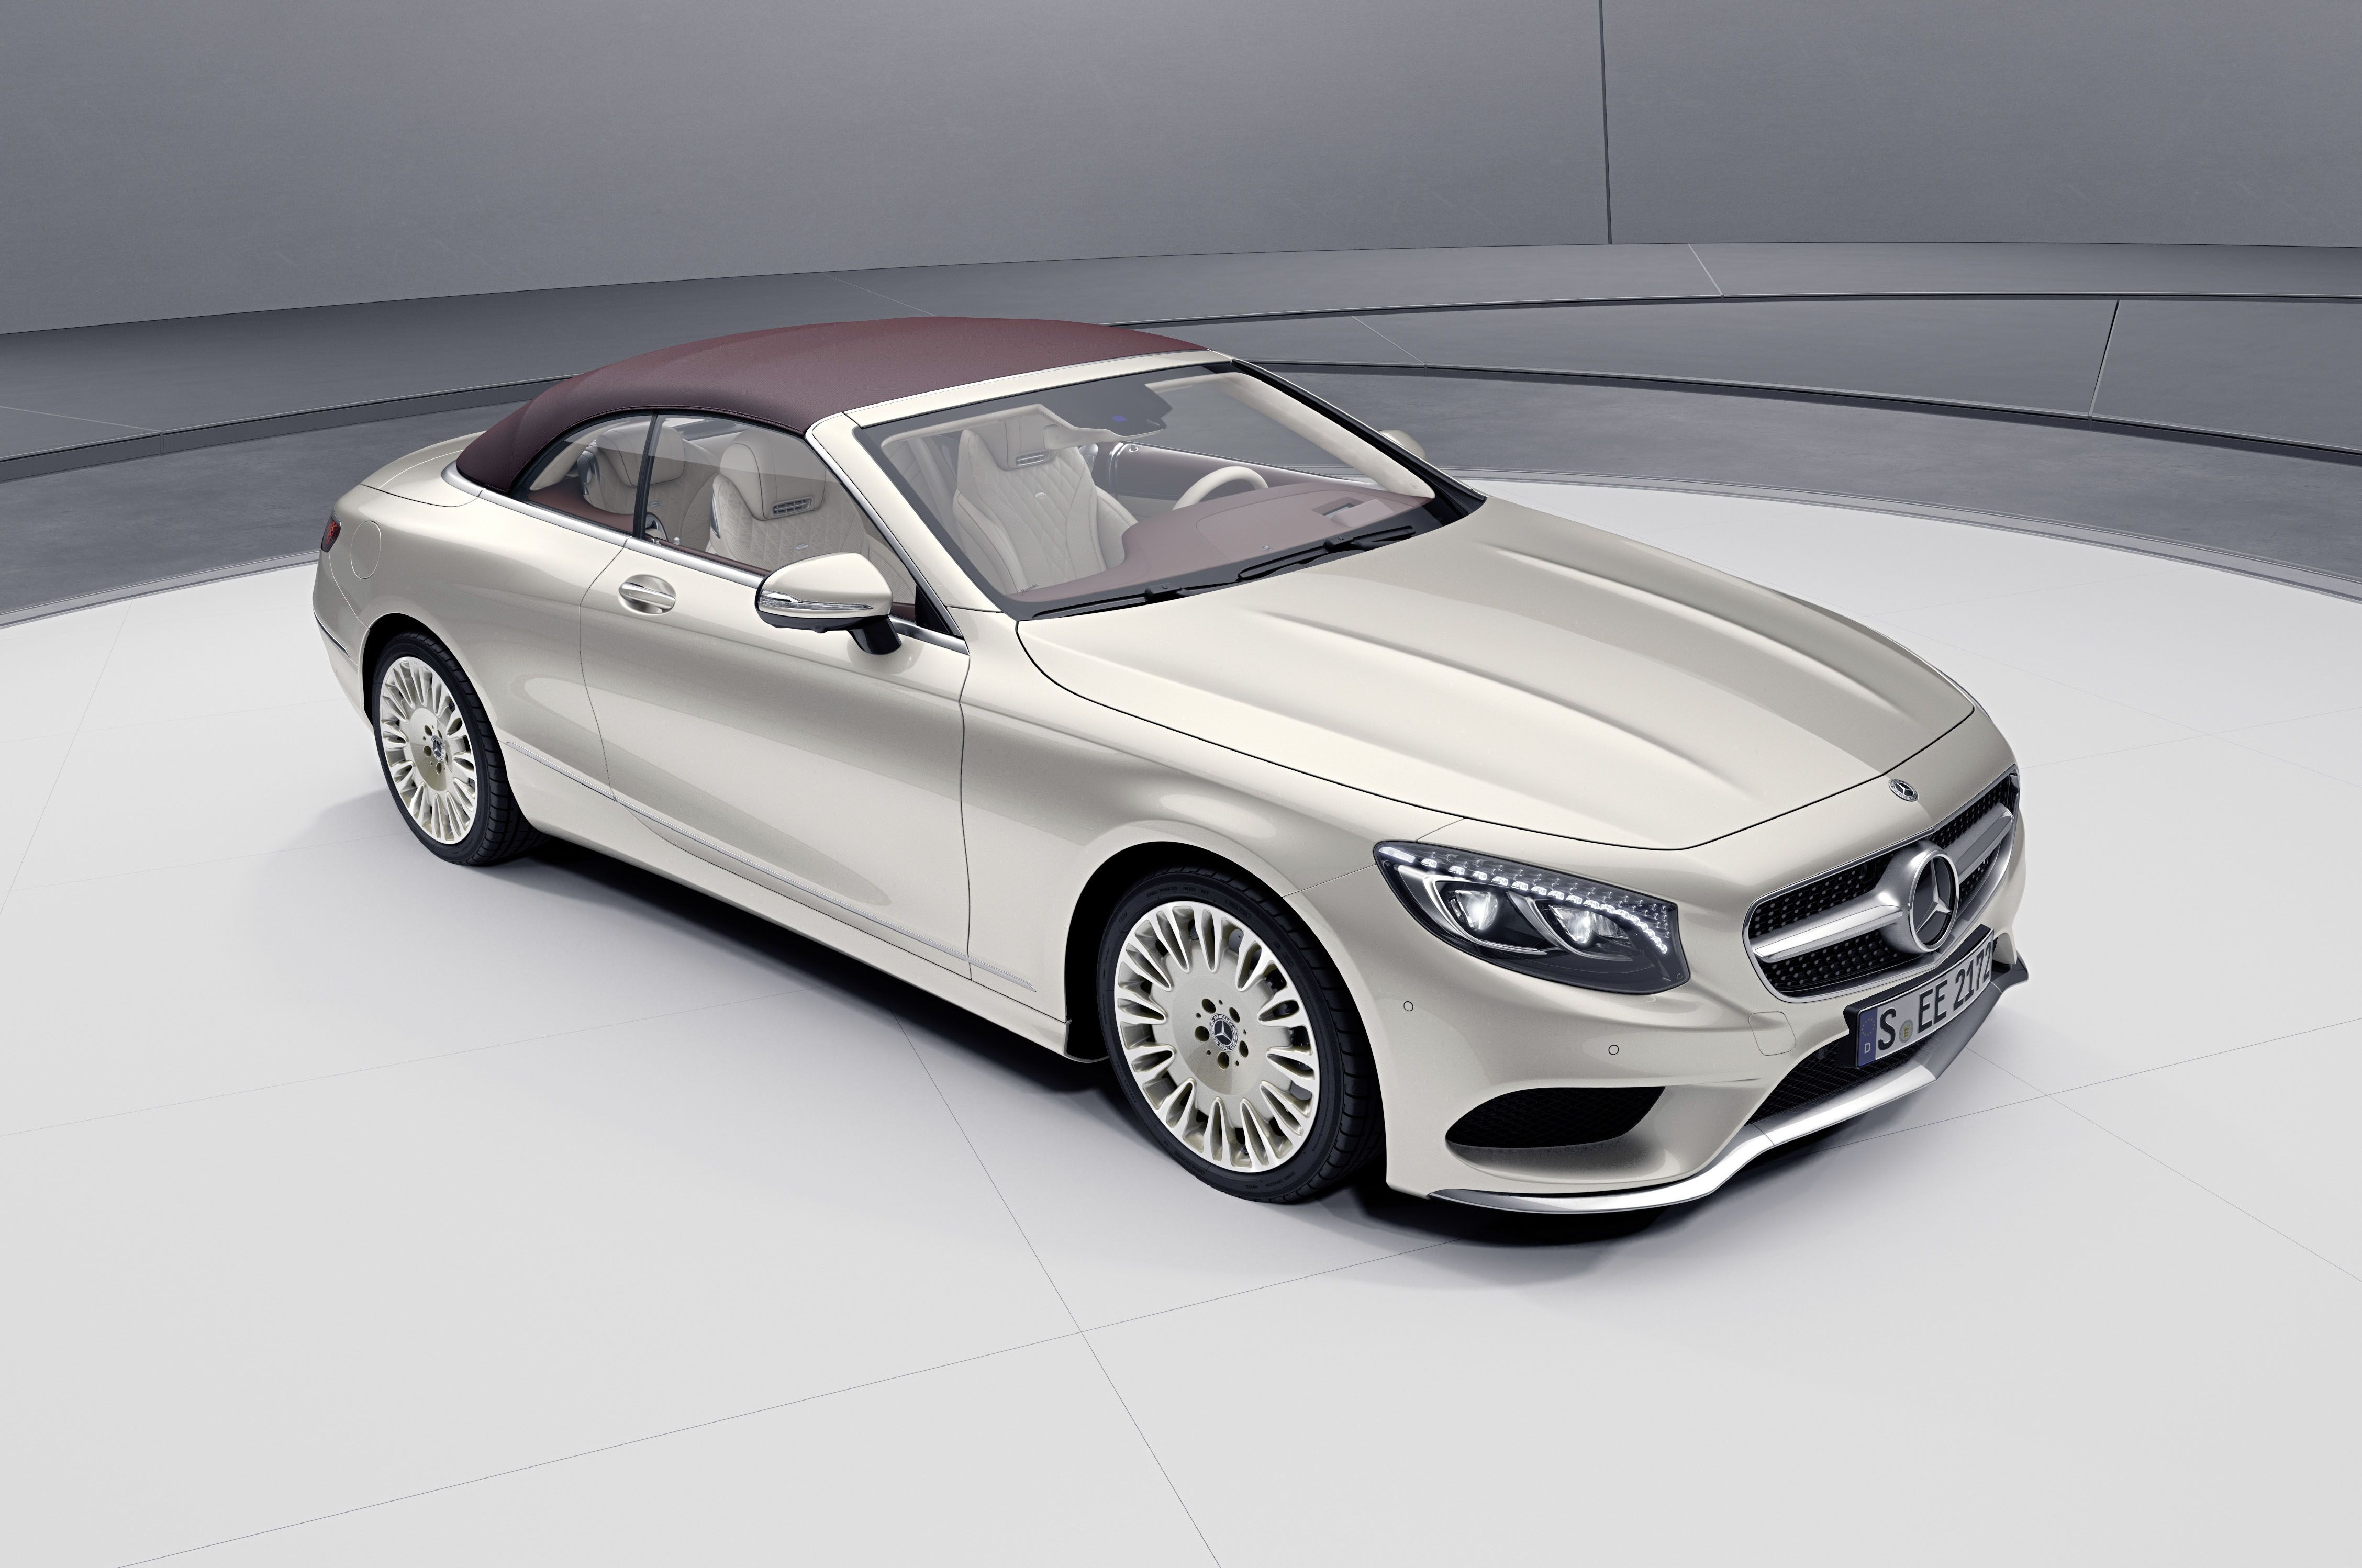 2019 Mercedes Benz S Class Exclusive Edition Gets The Swarovski